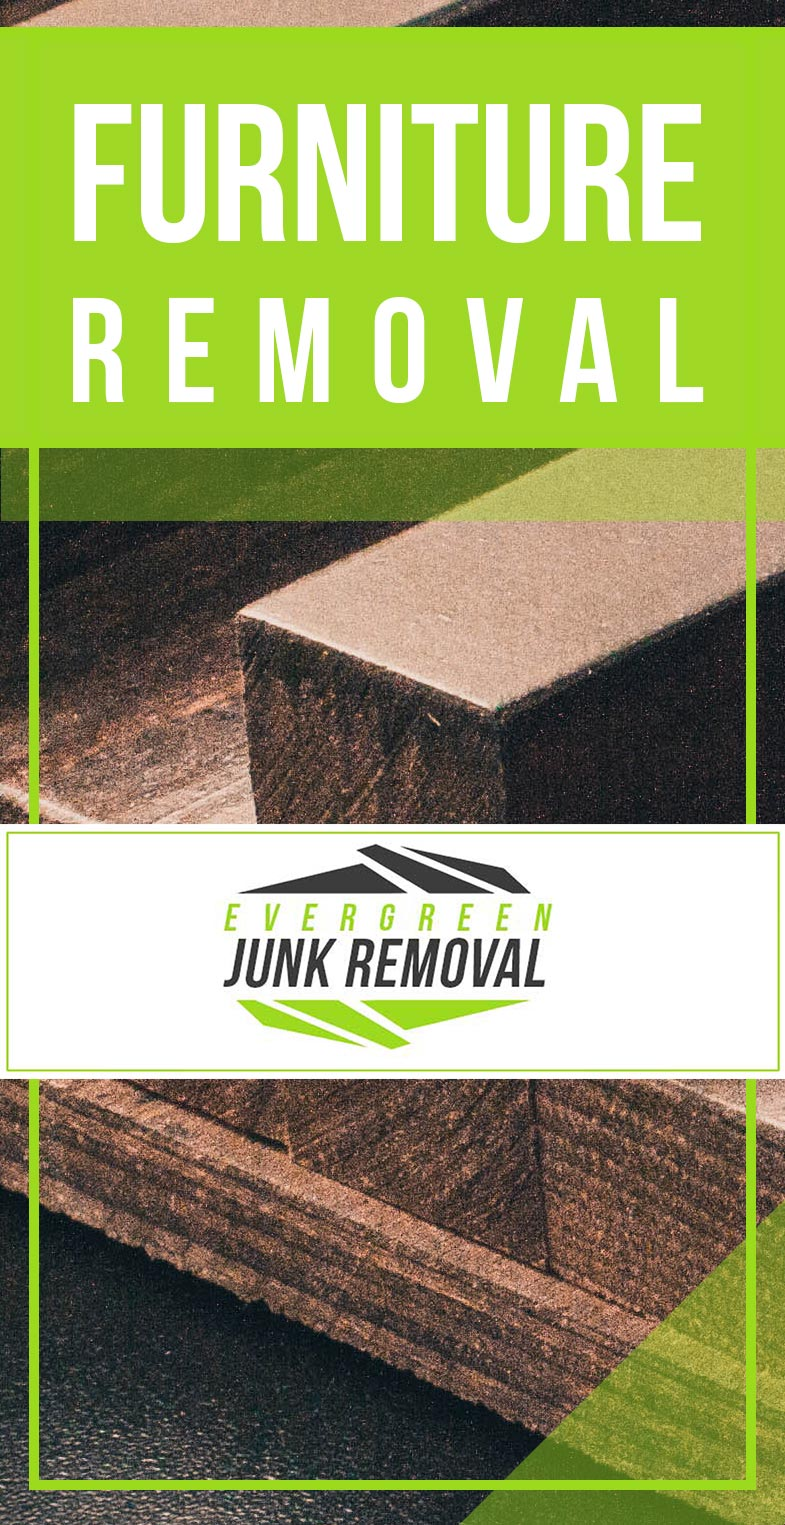 Junk Removal Westlake Furniture Removal